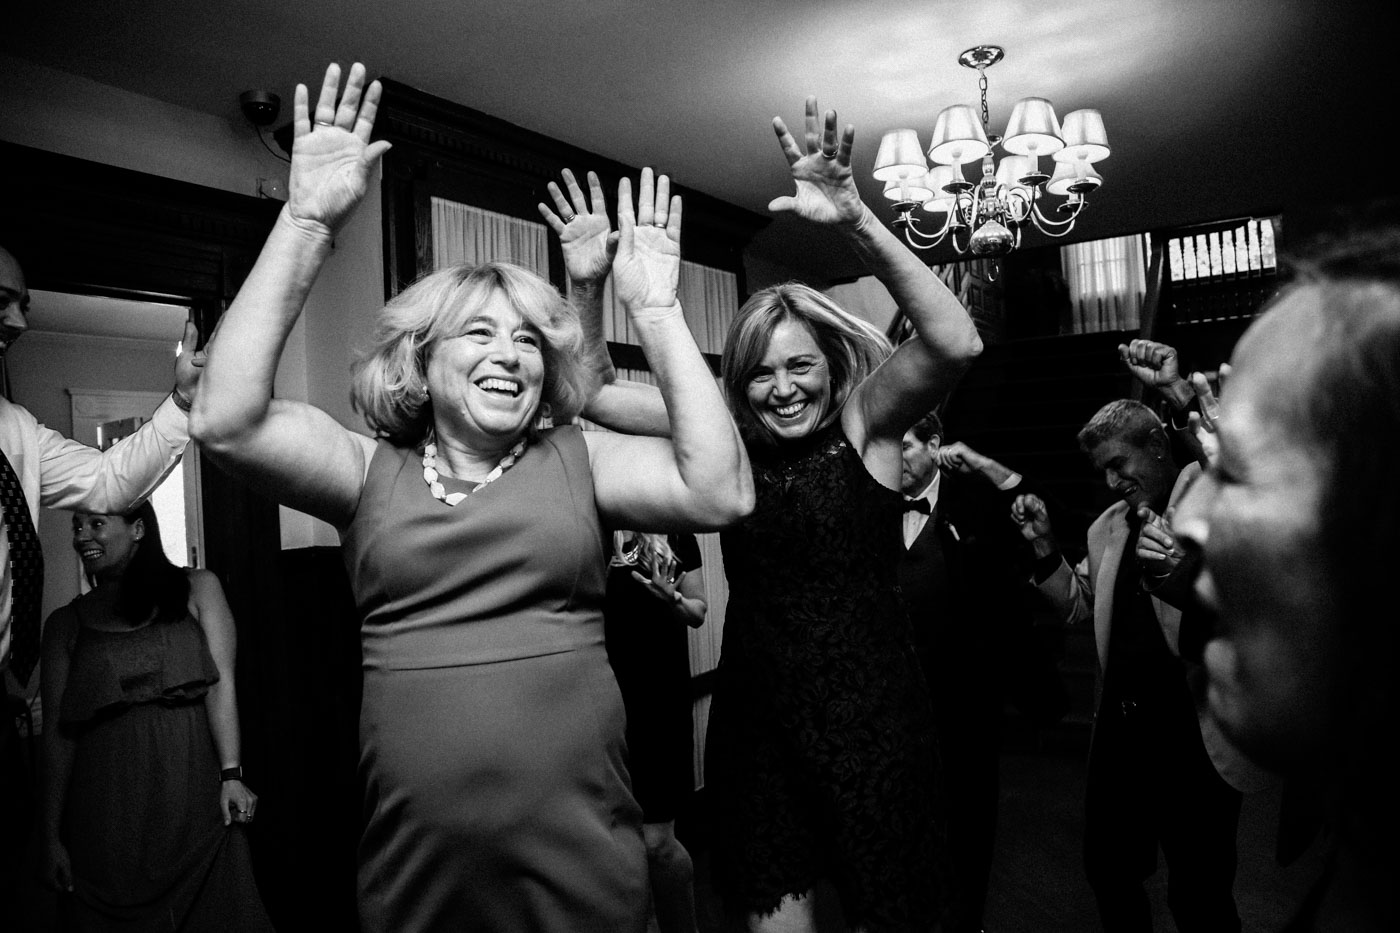 two women dancing with hands in air at wedding